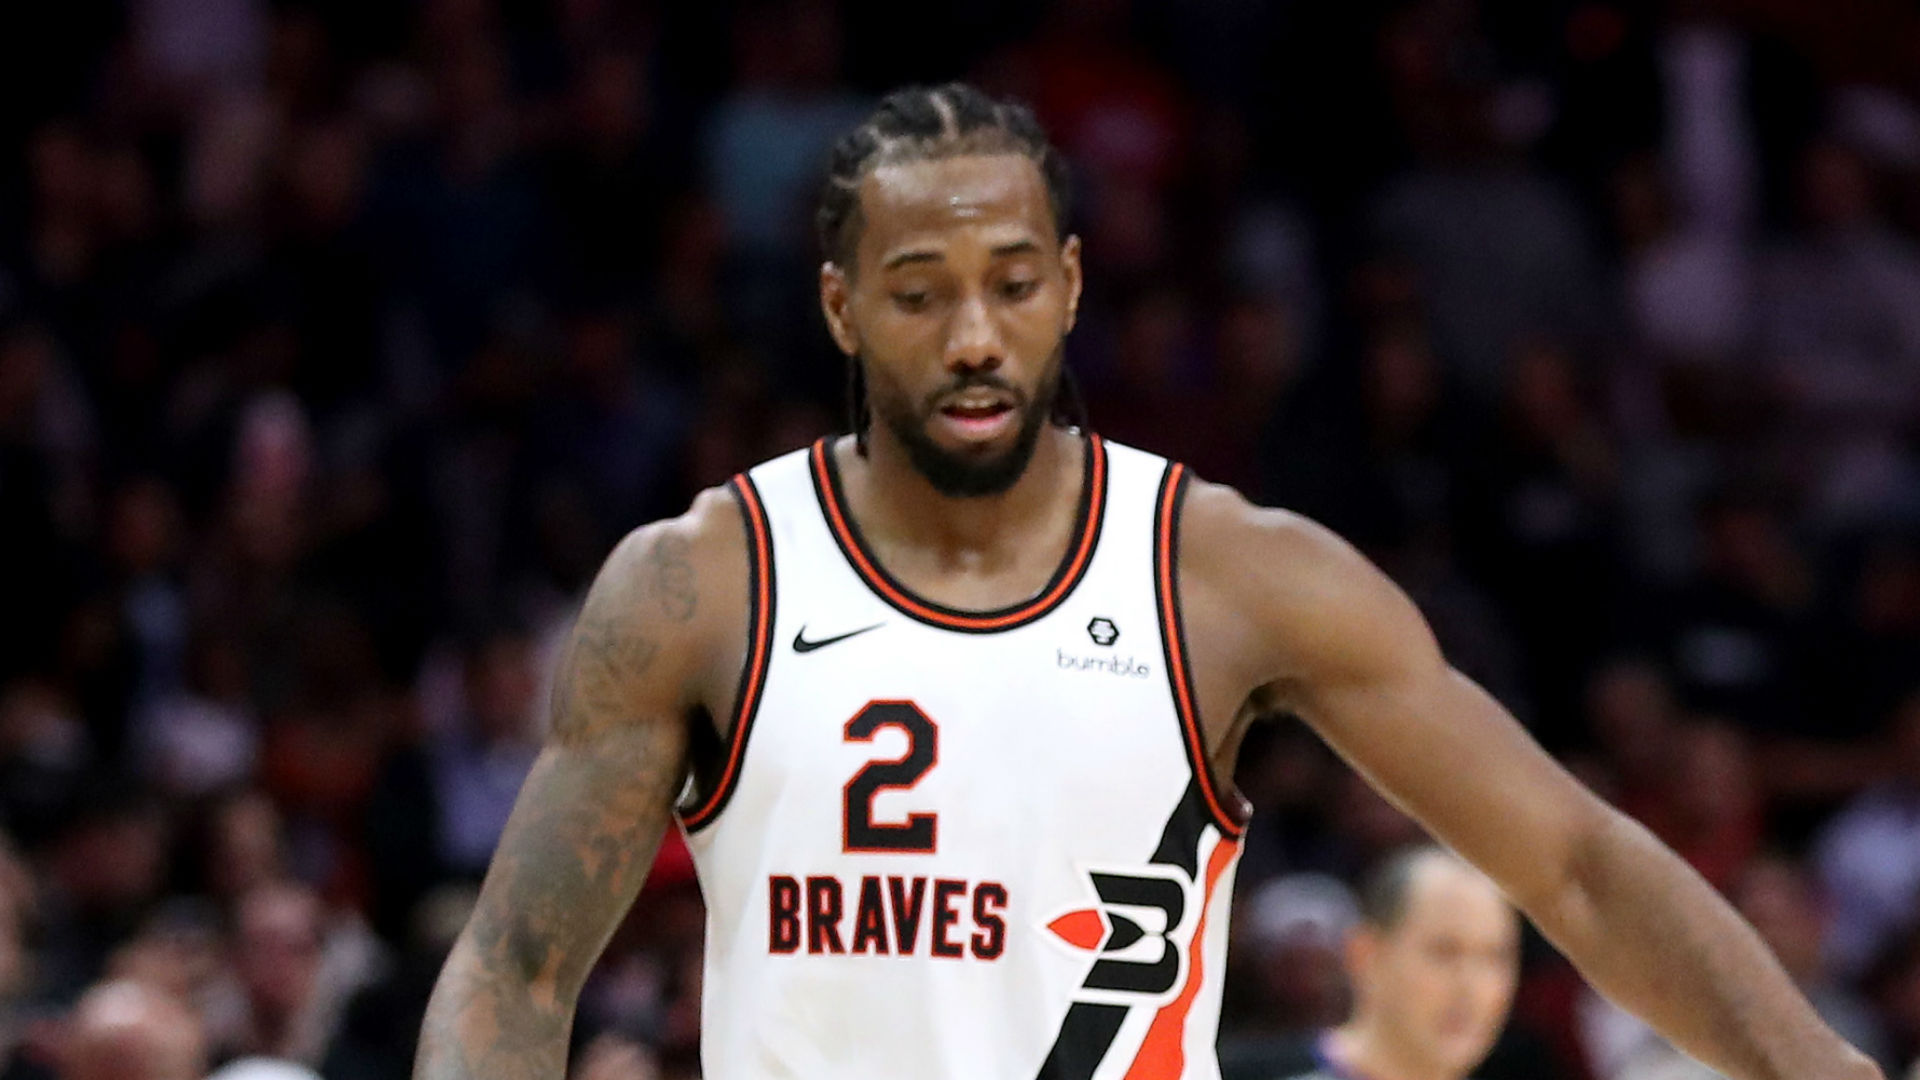 """The NBA revealed Kawhi Leonard is suffering from """"an ongoing injury to the patella tendon in his left knee"""", shocking the Clippers star."""